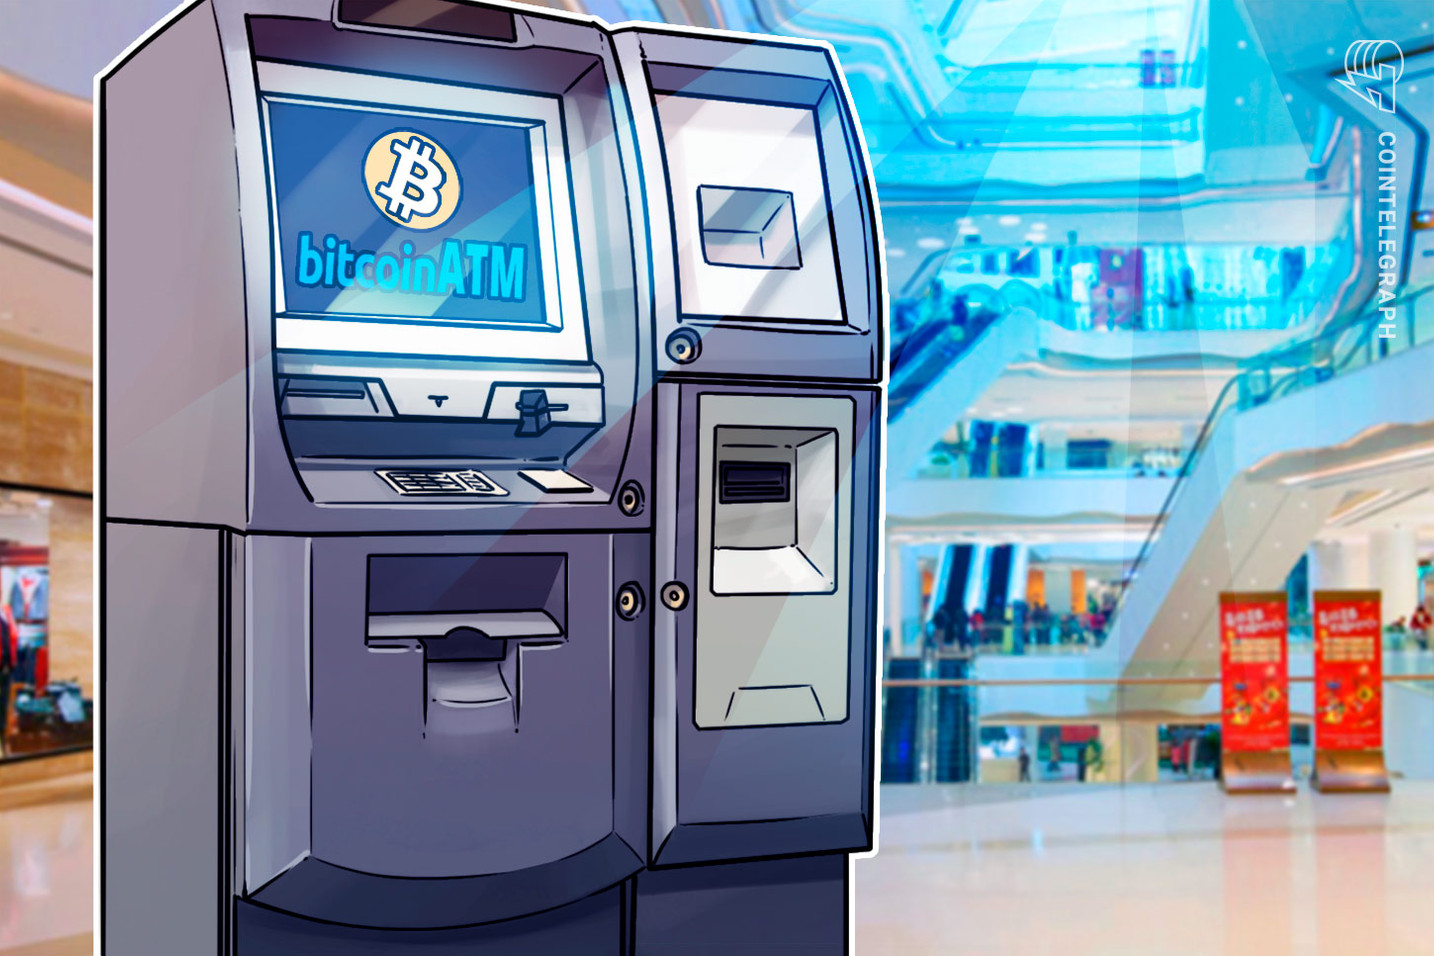 Bitcoin ATMs are booming in this Latin American country